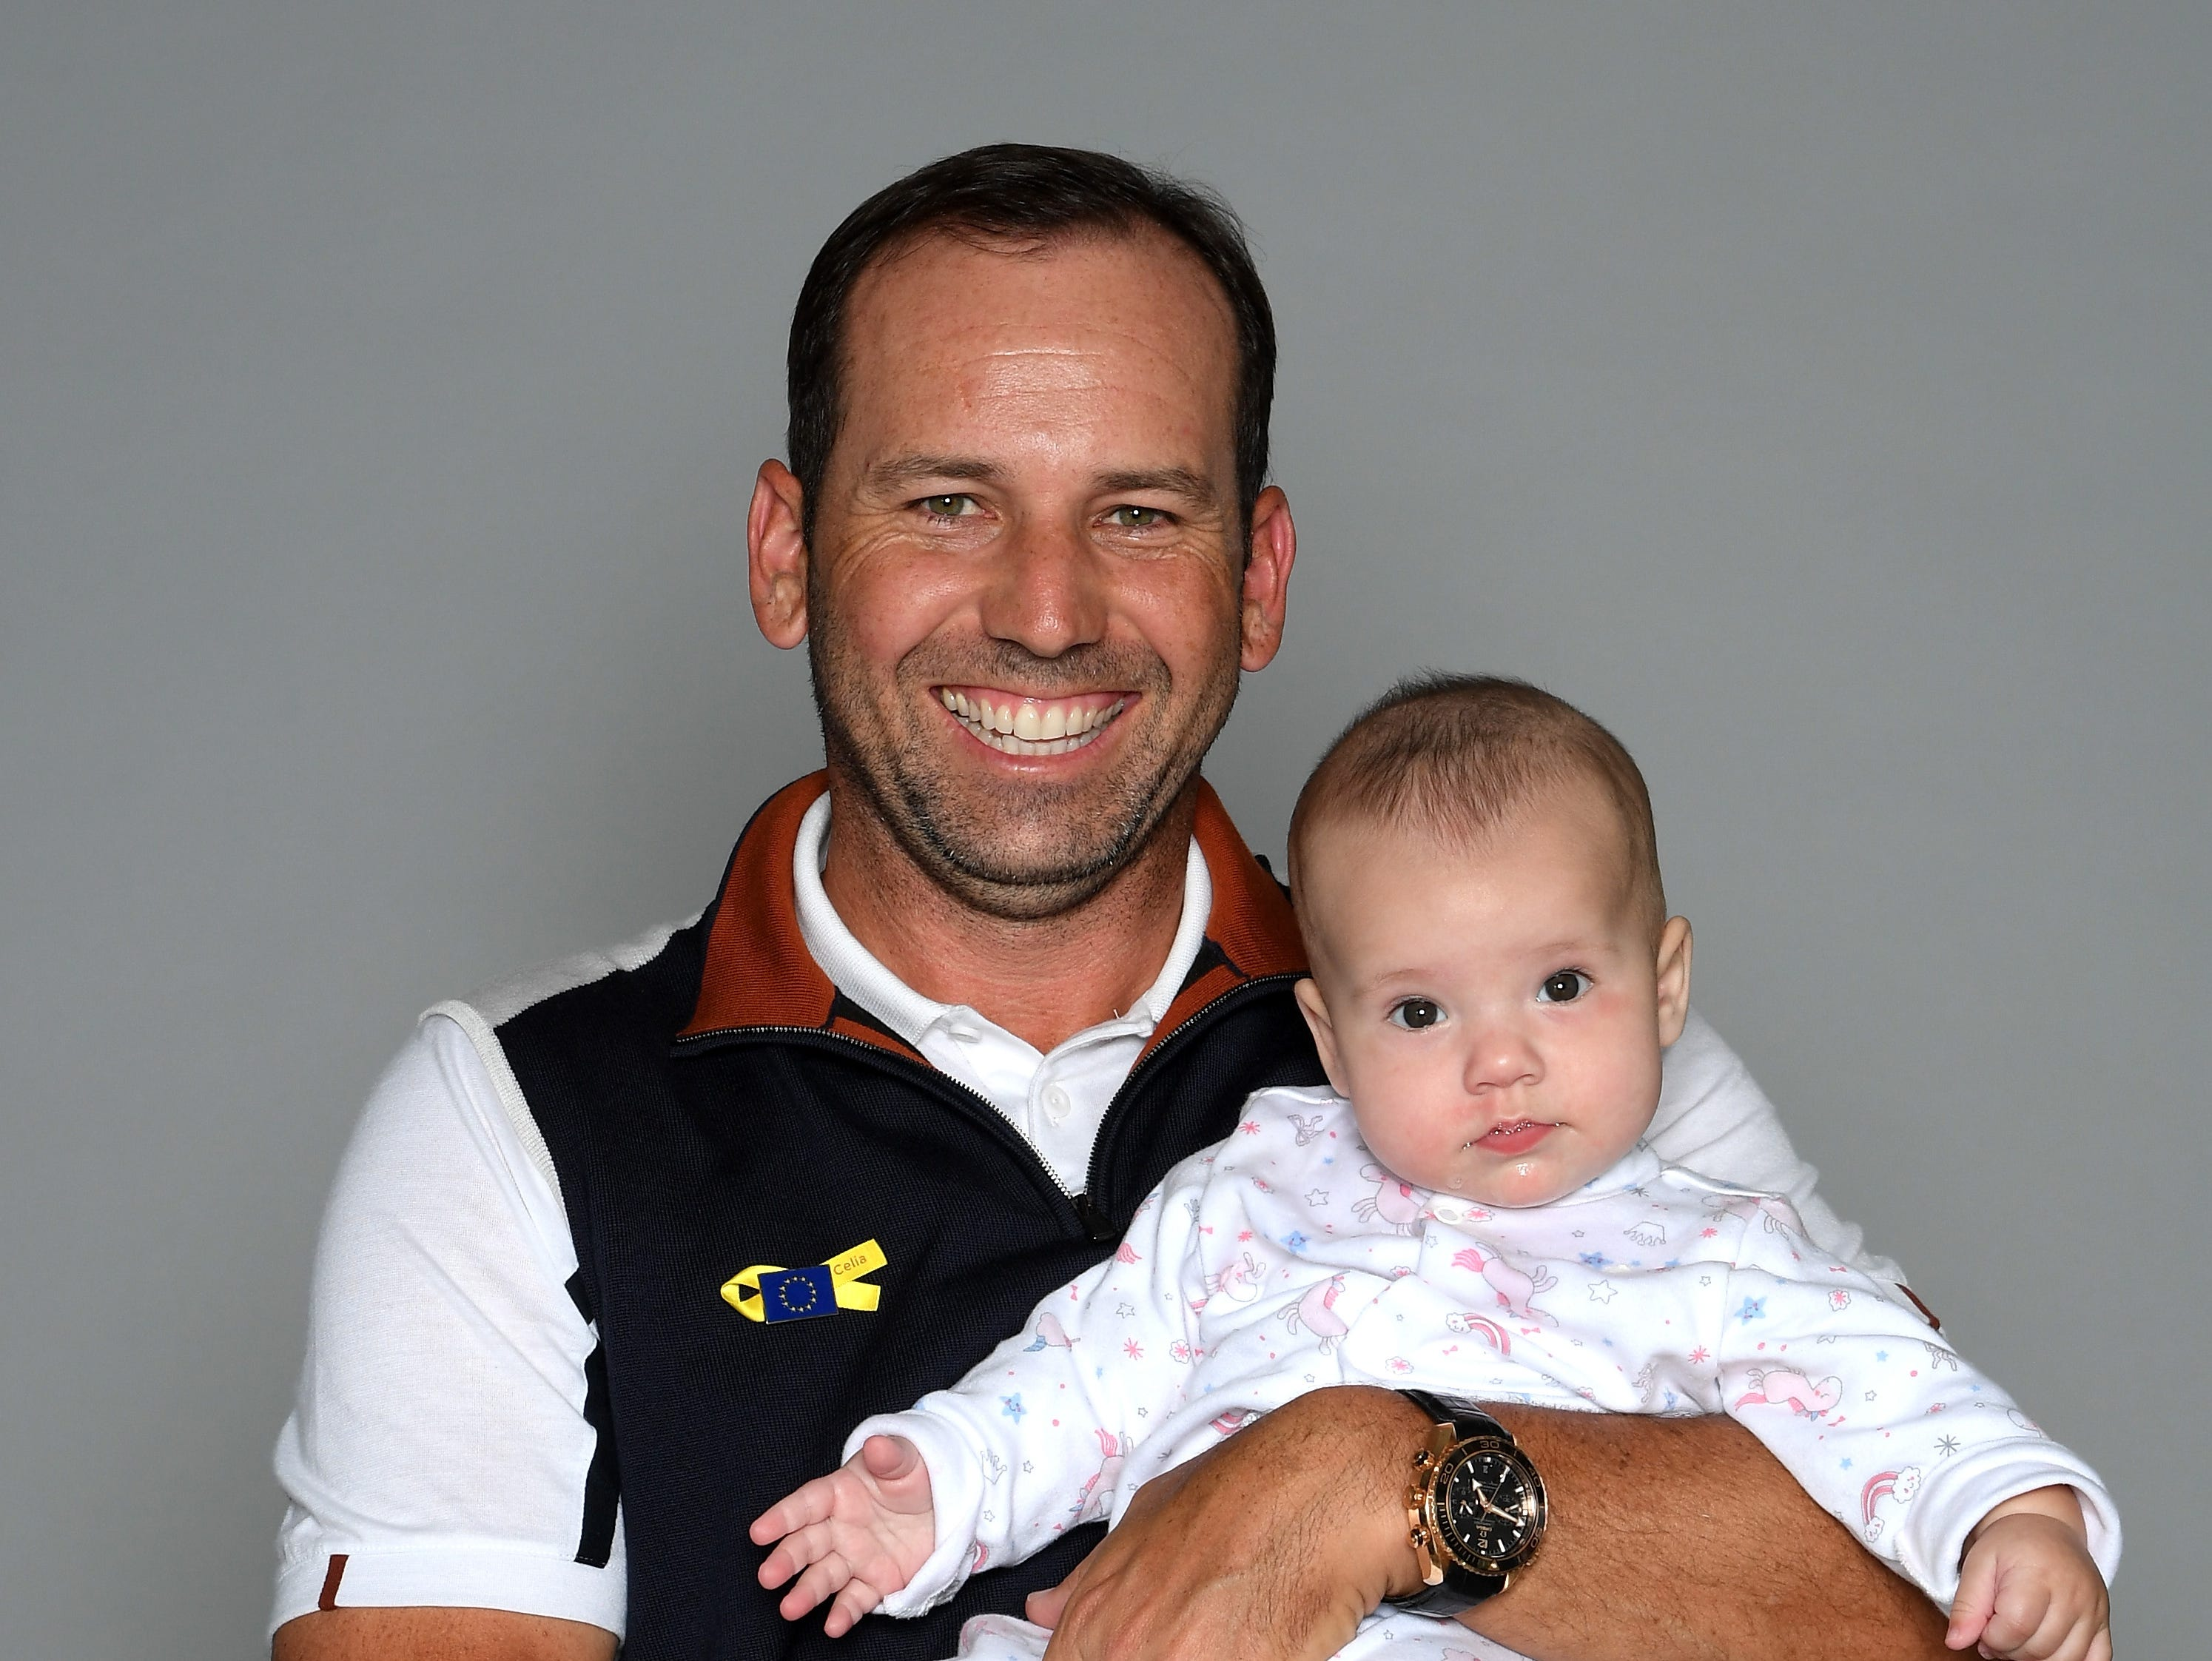 Azalea Garcia posed with her dad Sergio Garcia before the Ryder Cup gala.